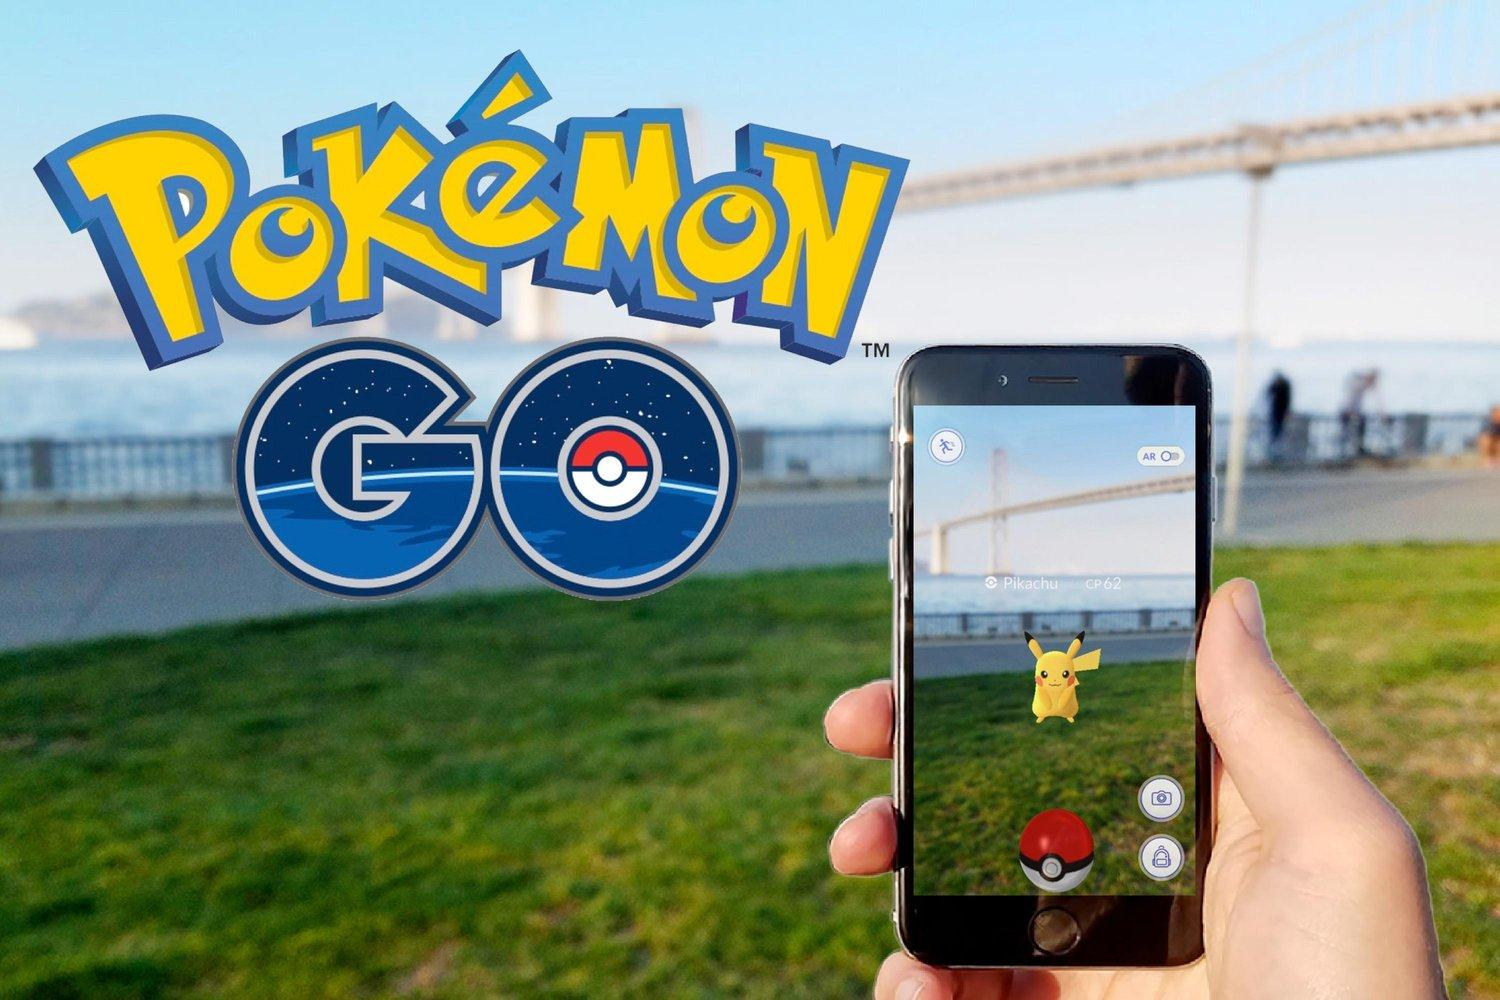 Men reportedly attacked by stranger armed with tire iron over Pokemon Go game